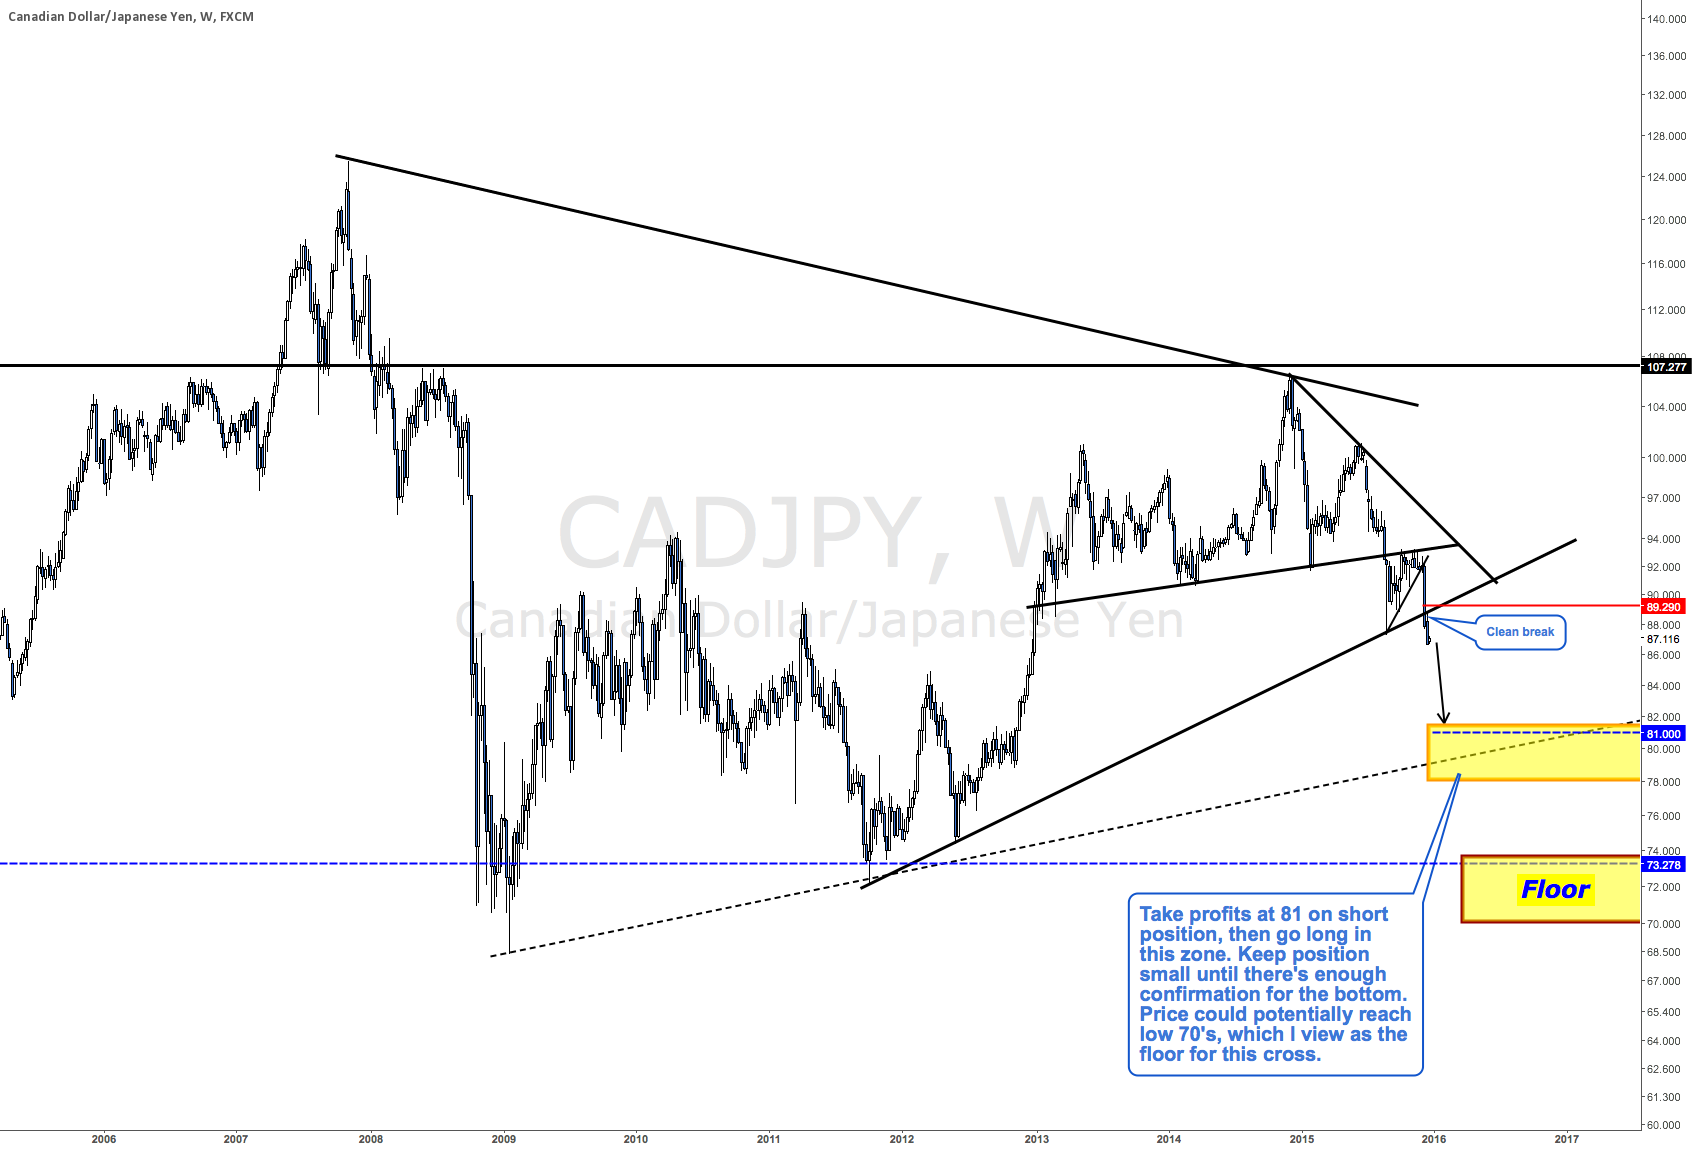 Update on CADJPY - LONG TERM VIEW WITH EXECUTION STRATEGY